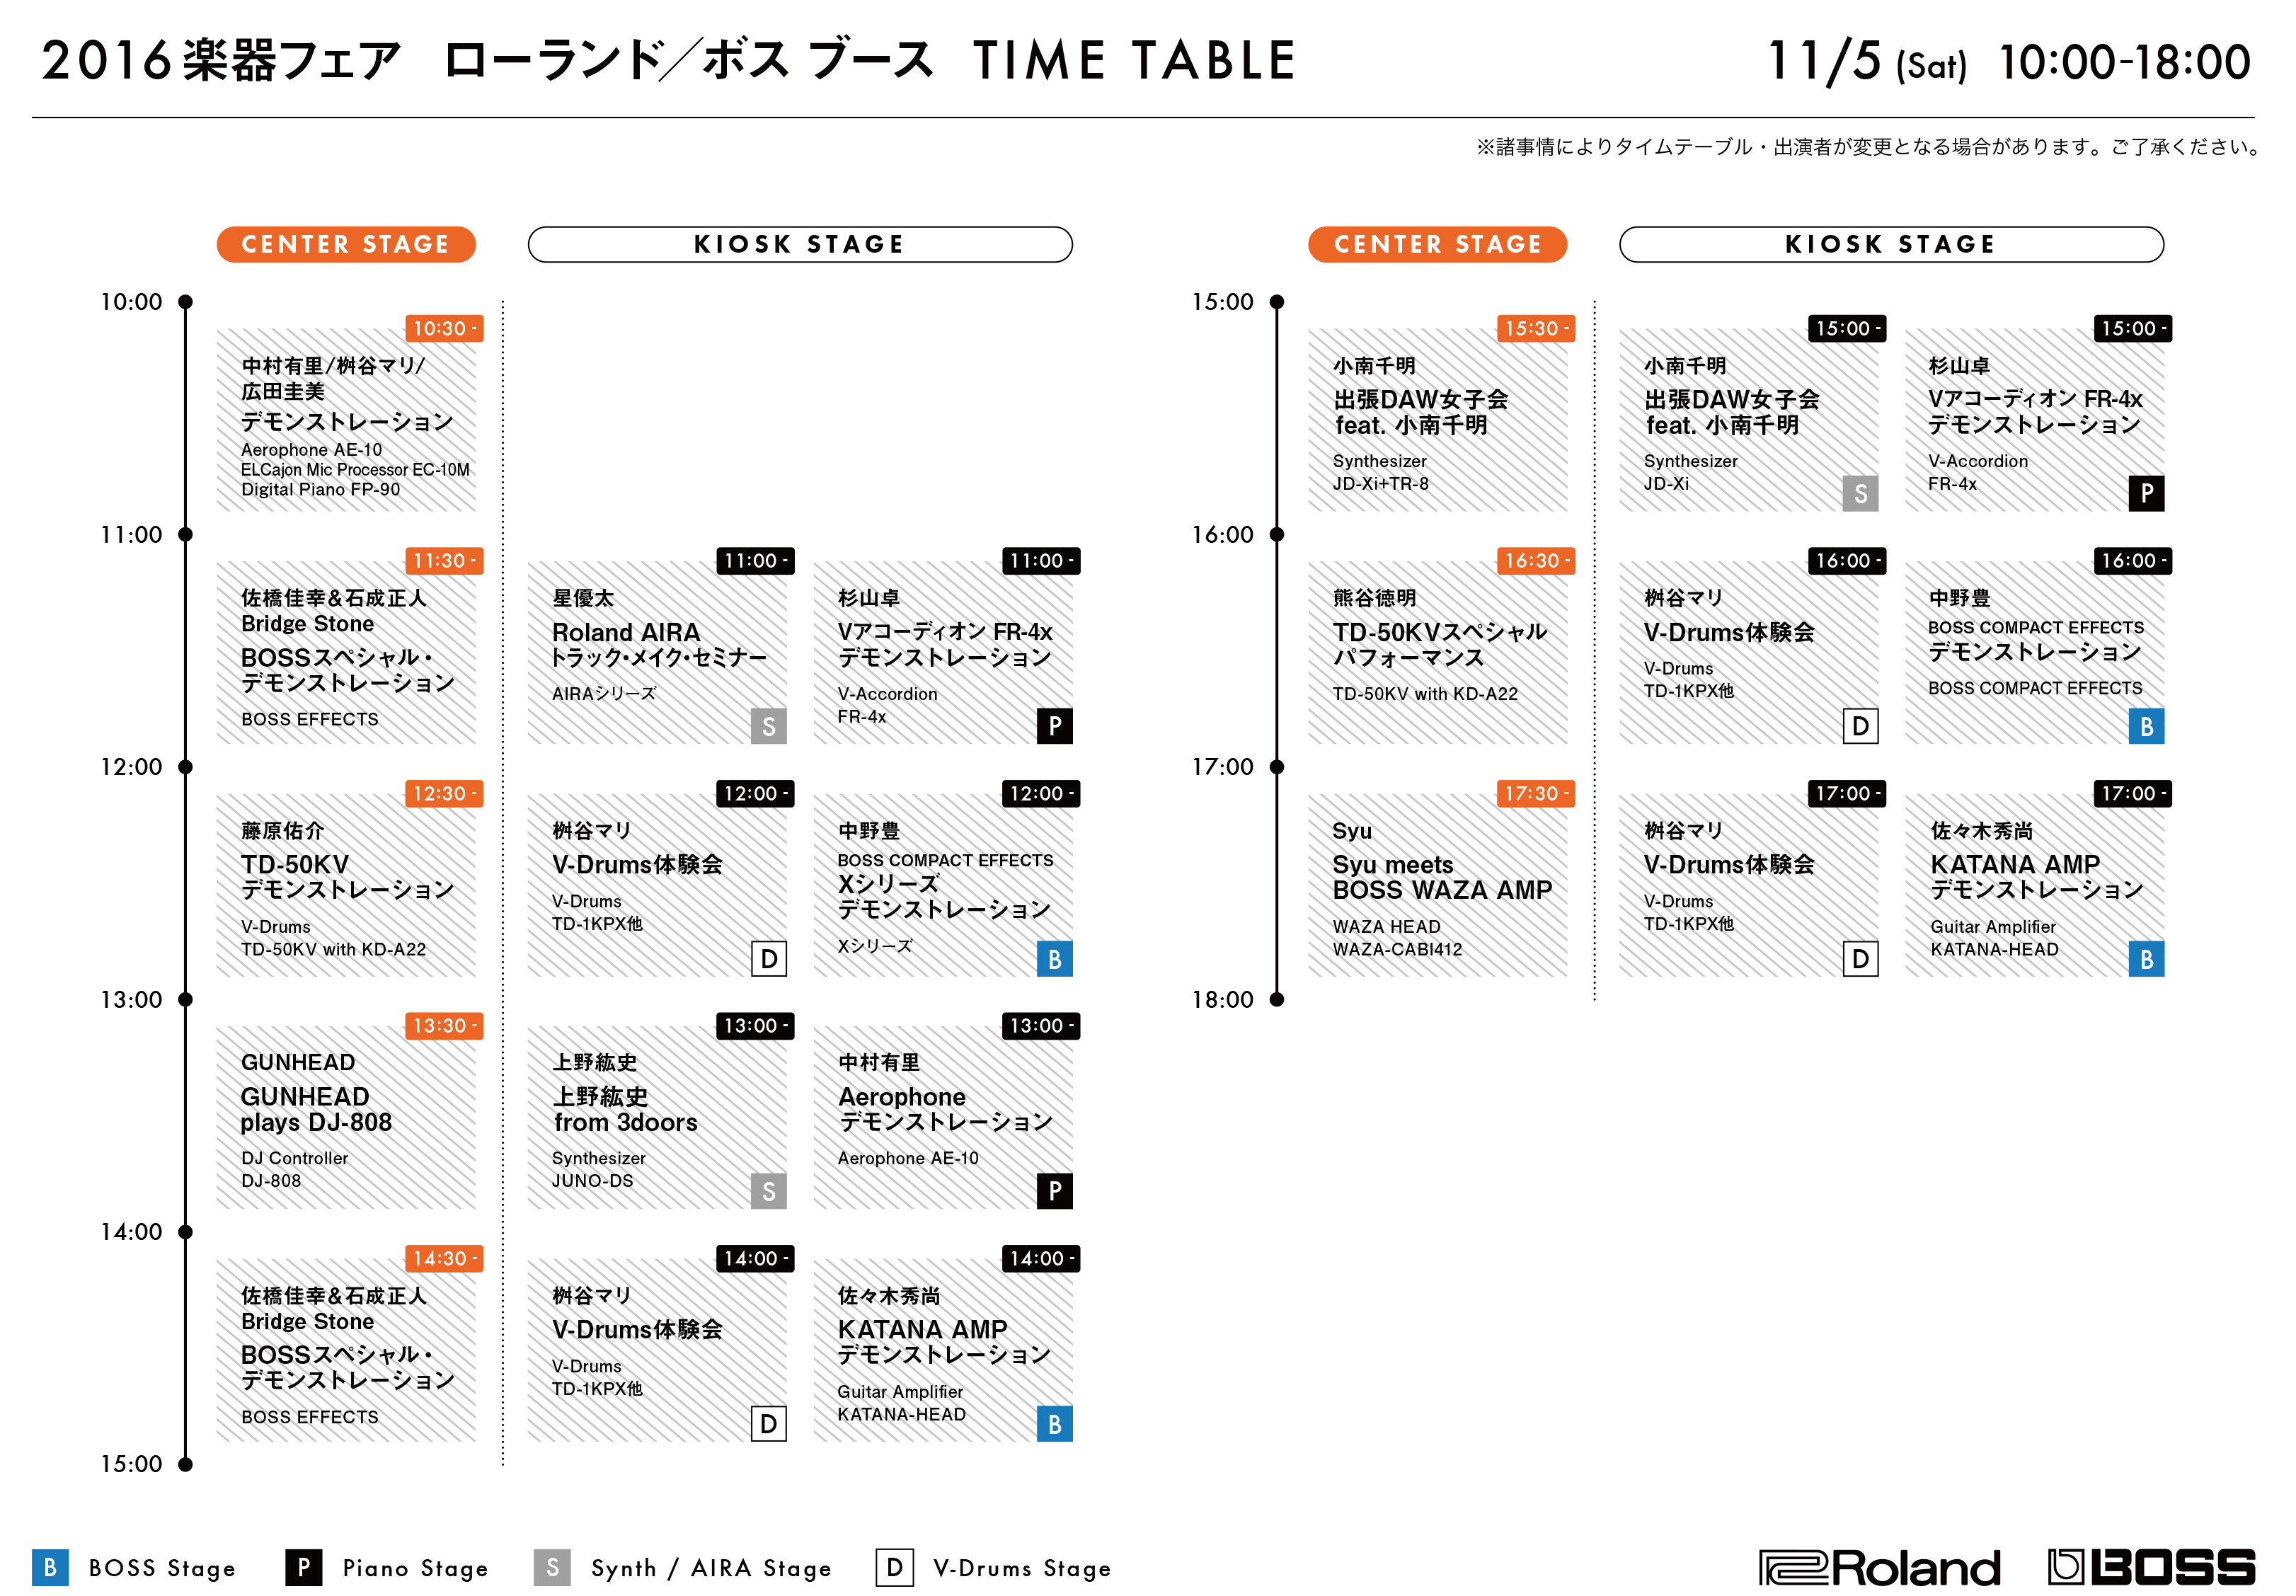 timetable_roland_boss_20161105